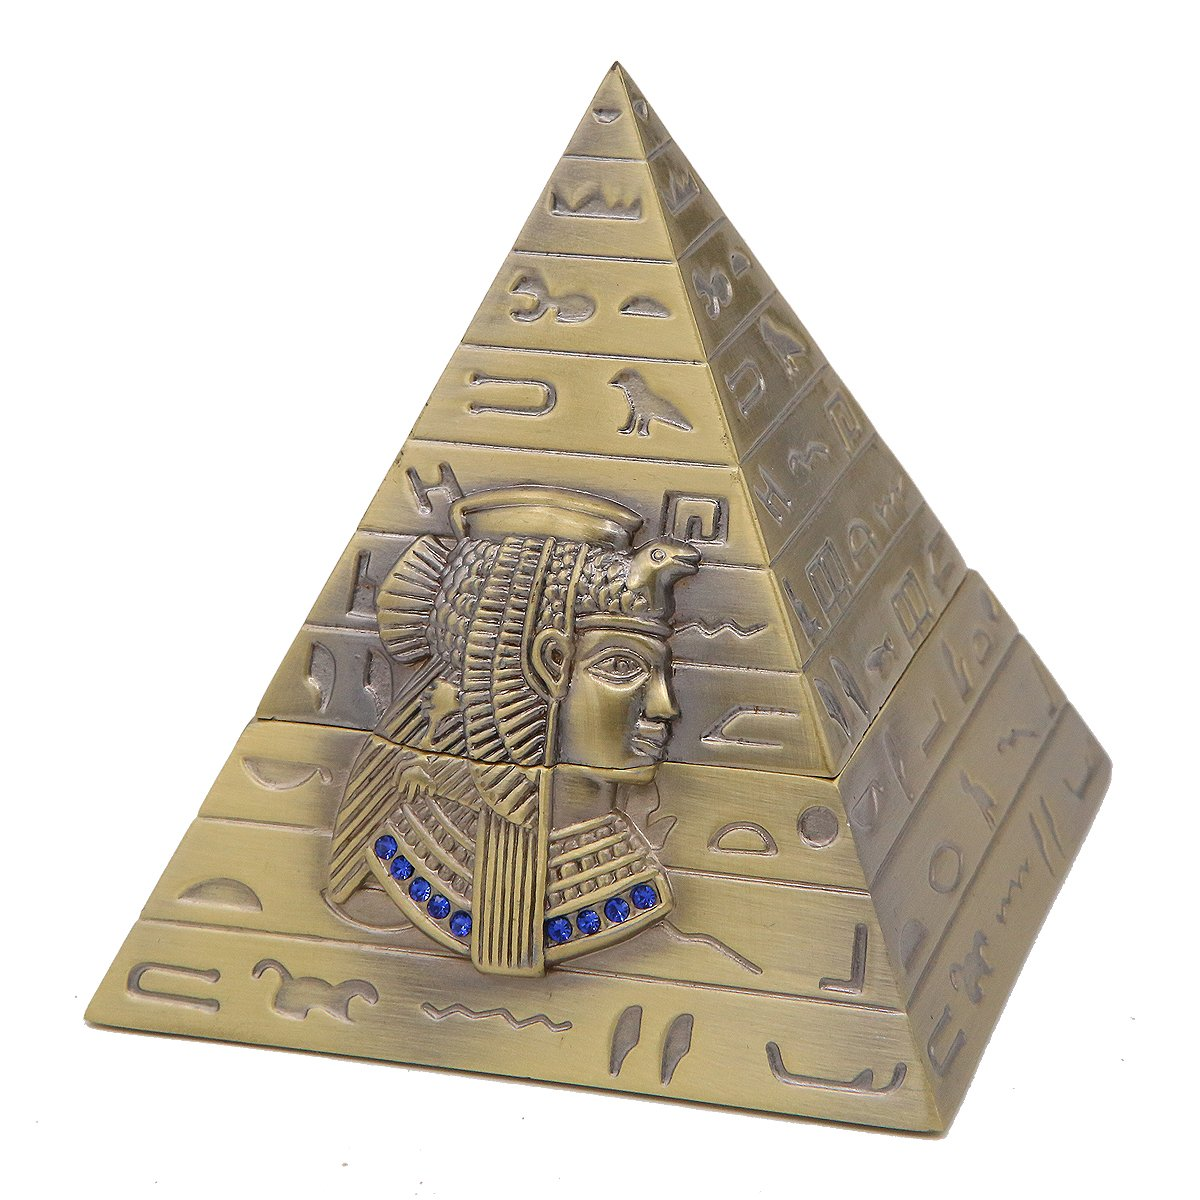 Winterworm Metal Ancient Egyptian Khufu Pharaoh Pyramid Jewelry Box Storage Jewelry Container Box Home Decoration Crafts Gifts